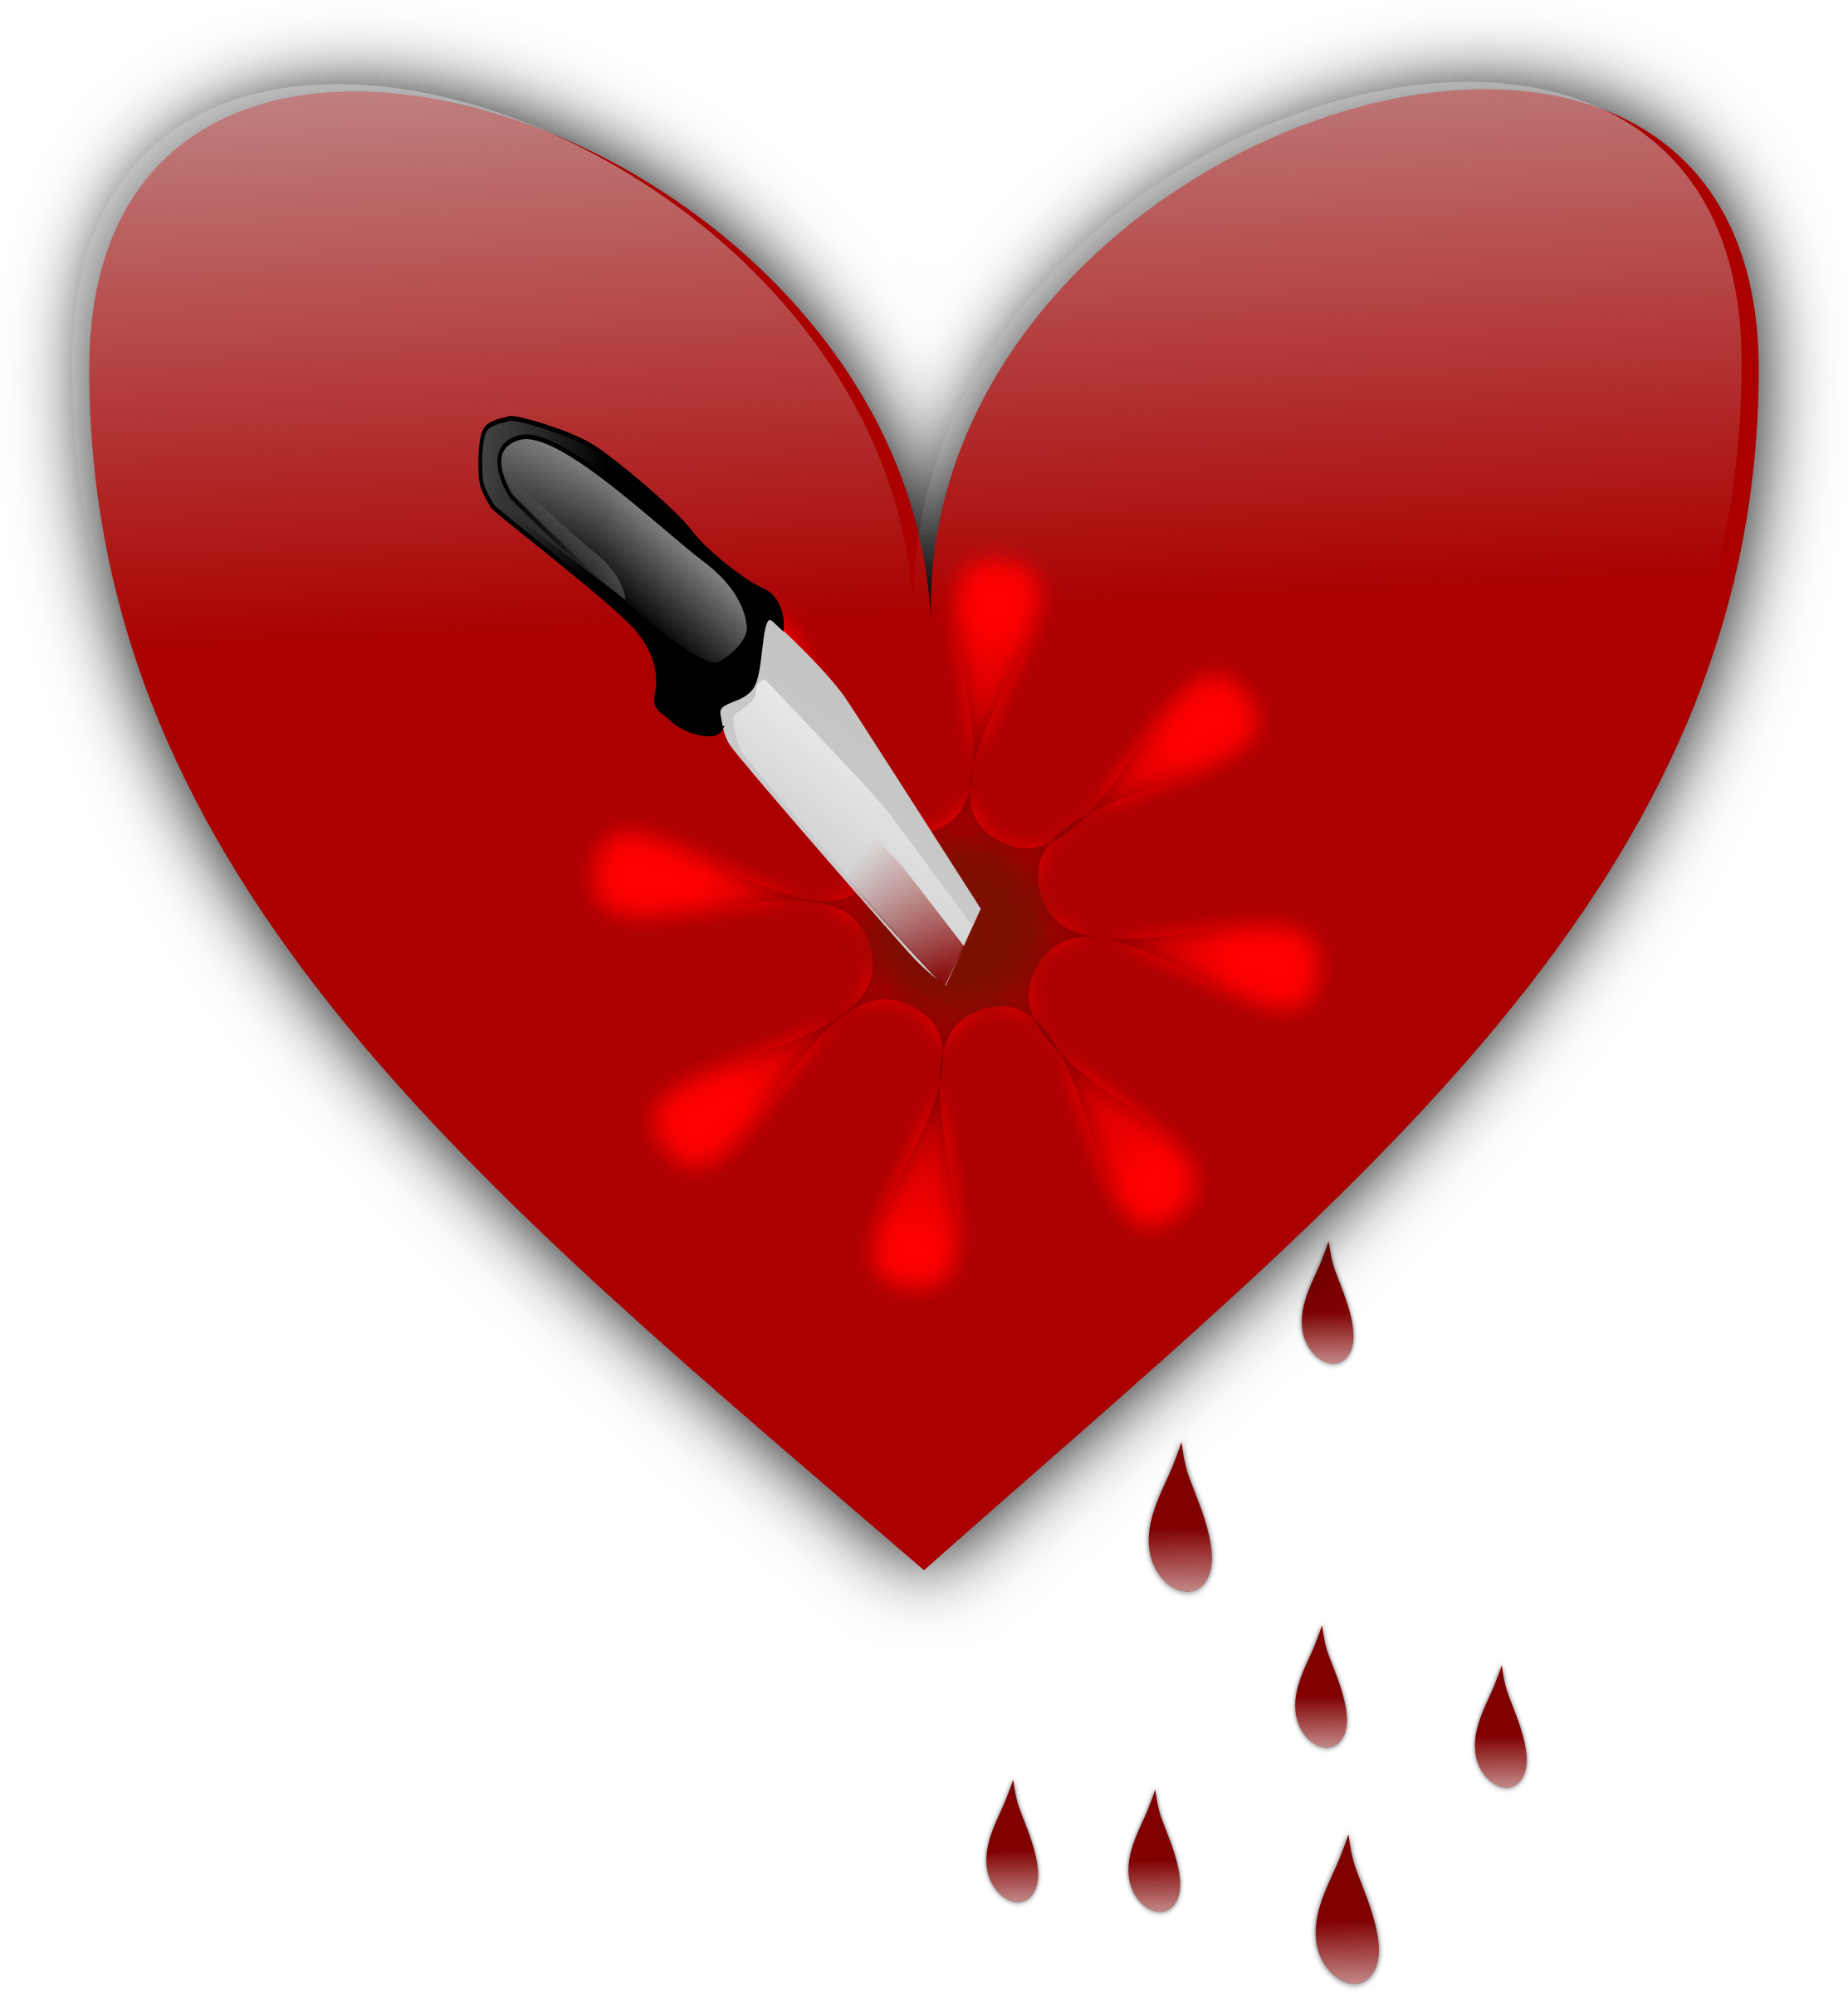 Bad heart clipart svg transparent Broken Heart Clipart Gambar svg transparent